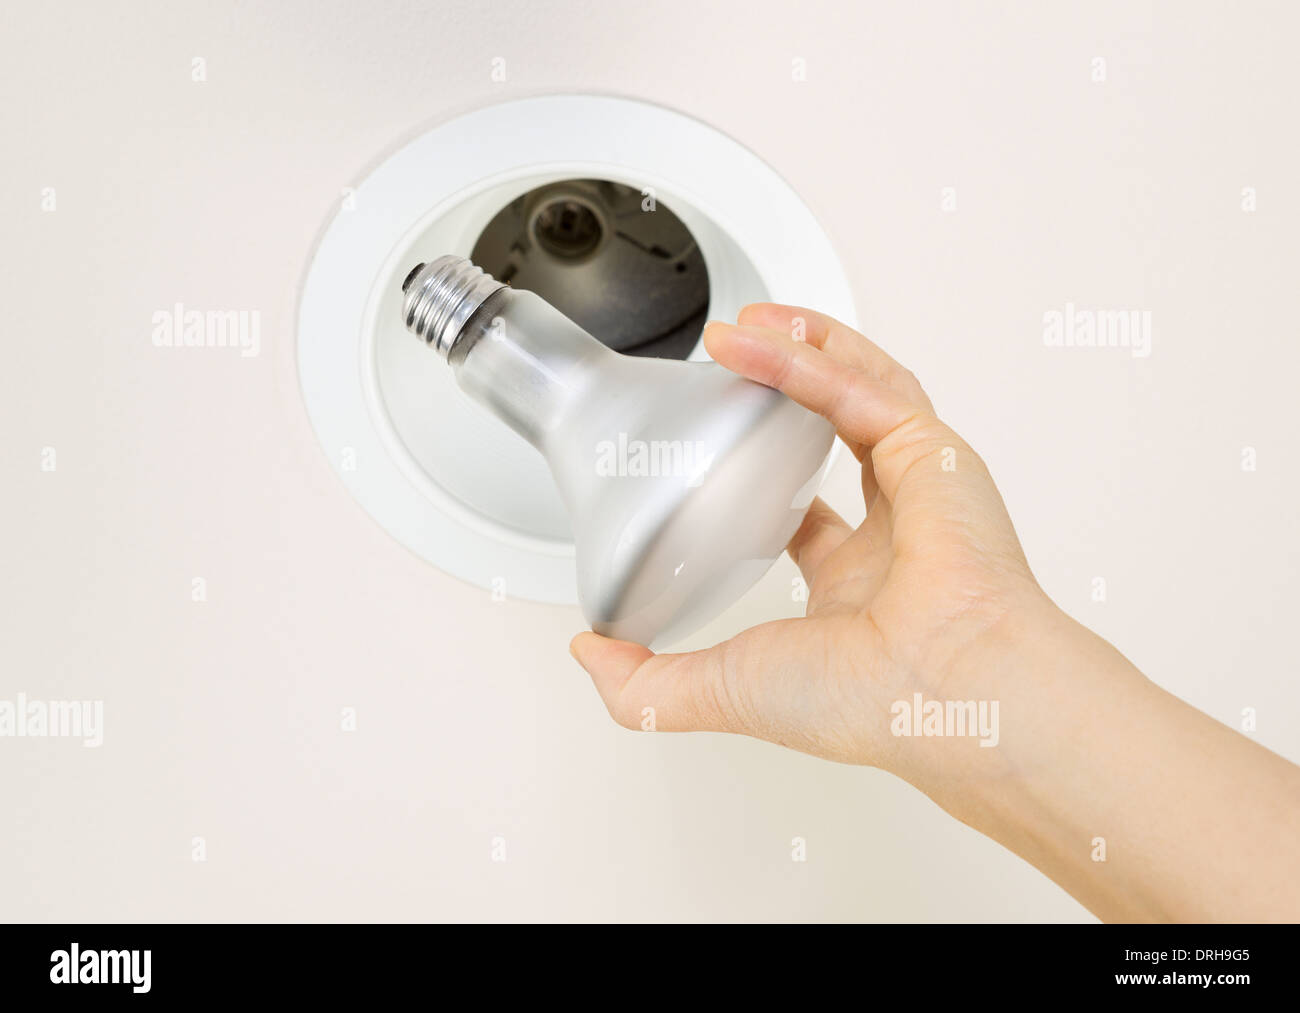 Photo of burned out flood light bulb being held by female hand with recessed ceiling light mount in background - Stock Image